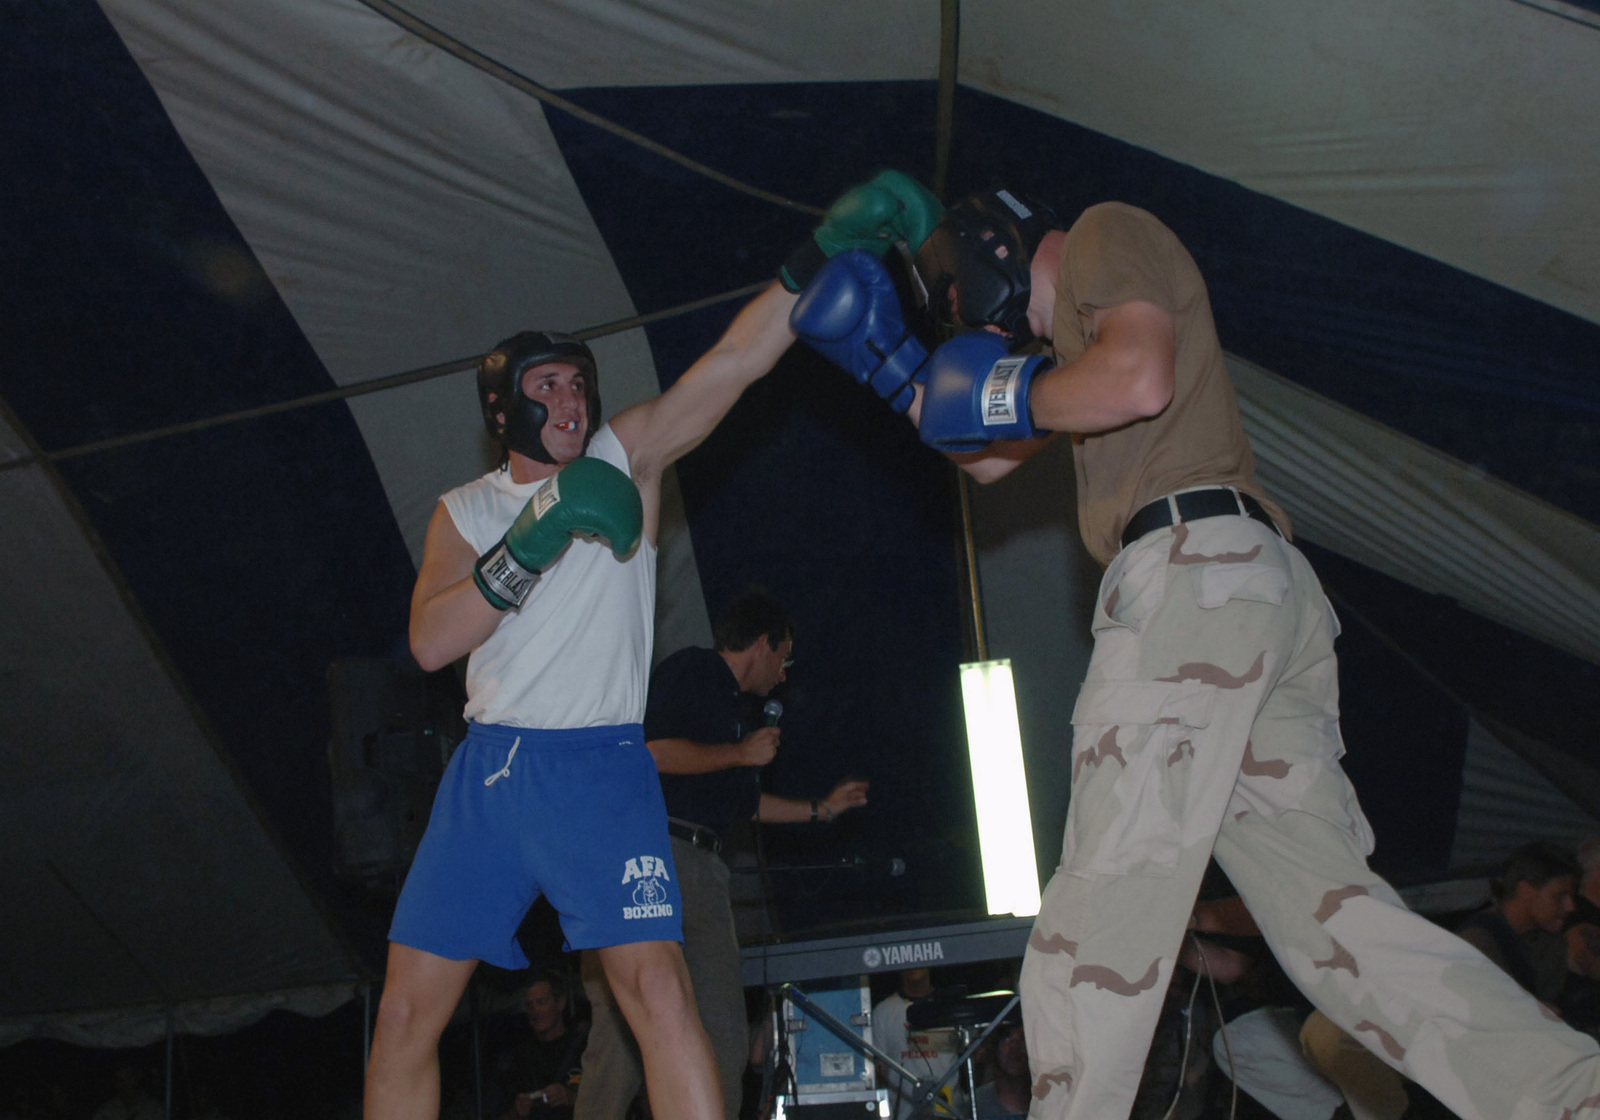 Professional boxer, Super Middleweight Champion, Joey Gilbert, practices his boxing skills with a US Army (USA) Soldier from TaskForce Devil at a show put on by visiting celebrities at Forward Operating Base (FOB) Salerno, in support of Operation ENDURING FREEDOM